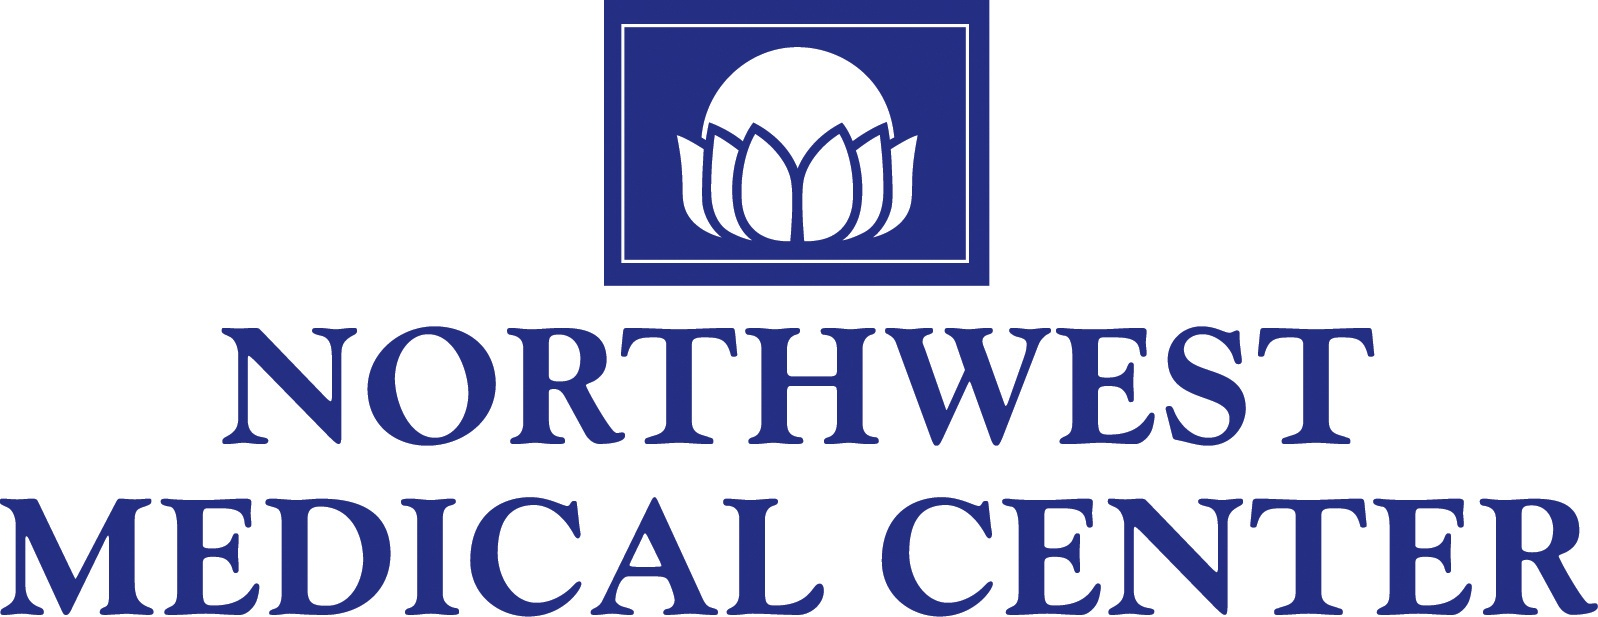 Northwest-Medical-Center-three-line-RGB